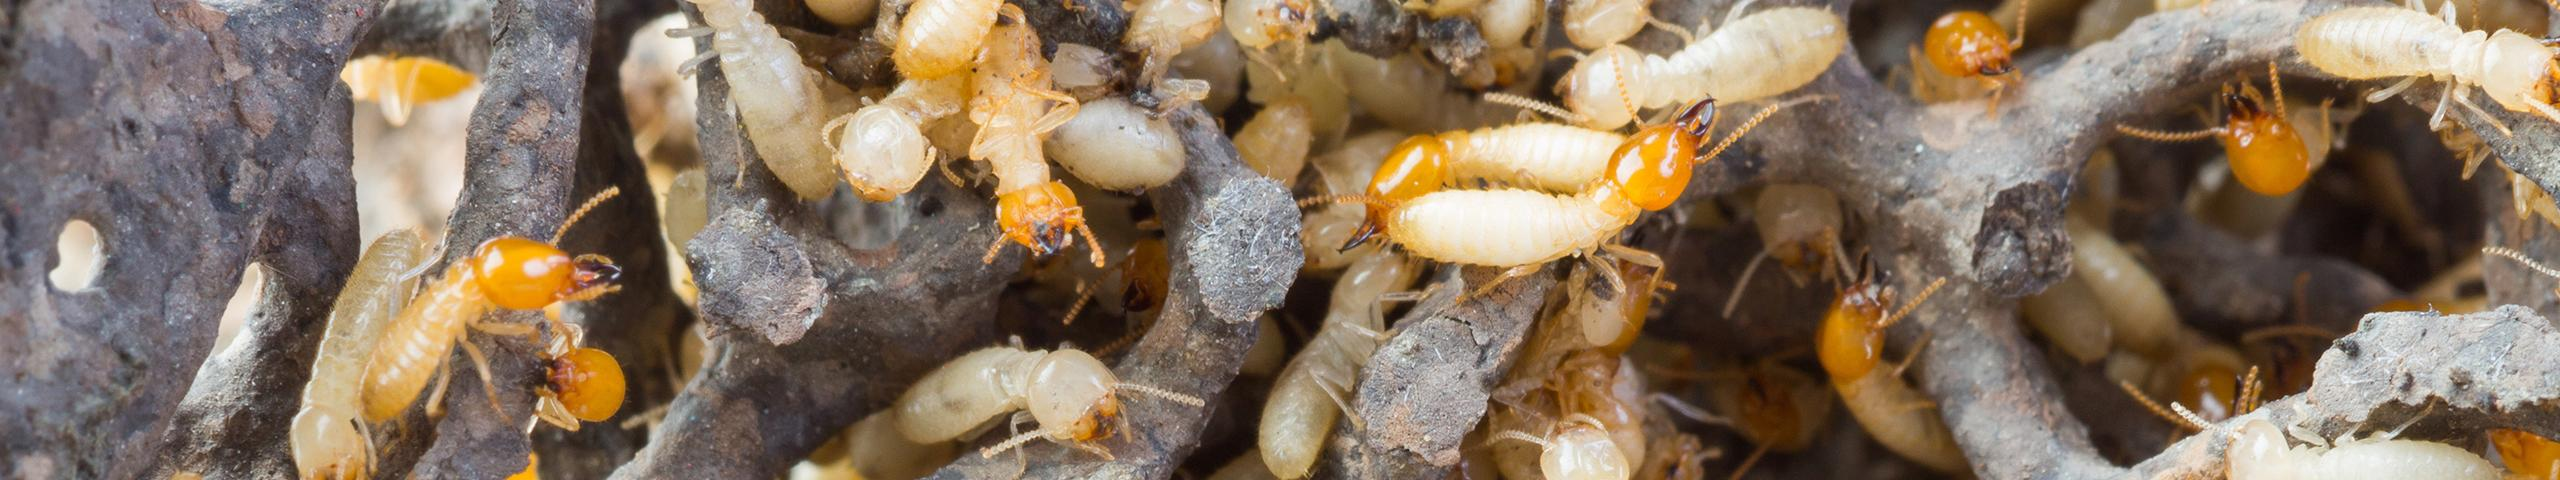 many termites in hollowed out wood